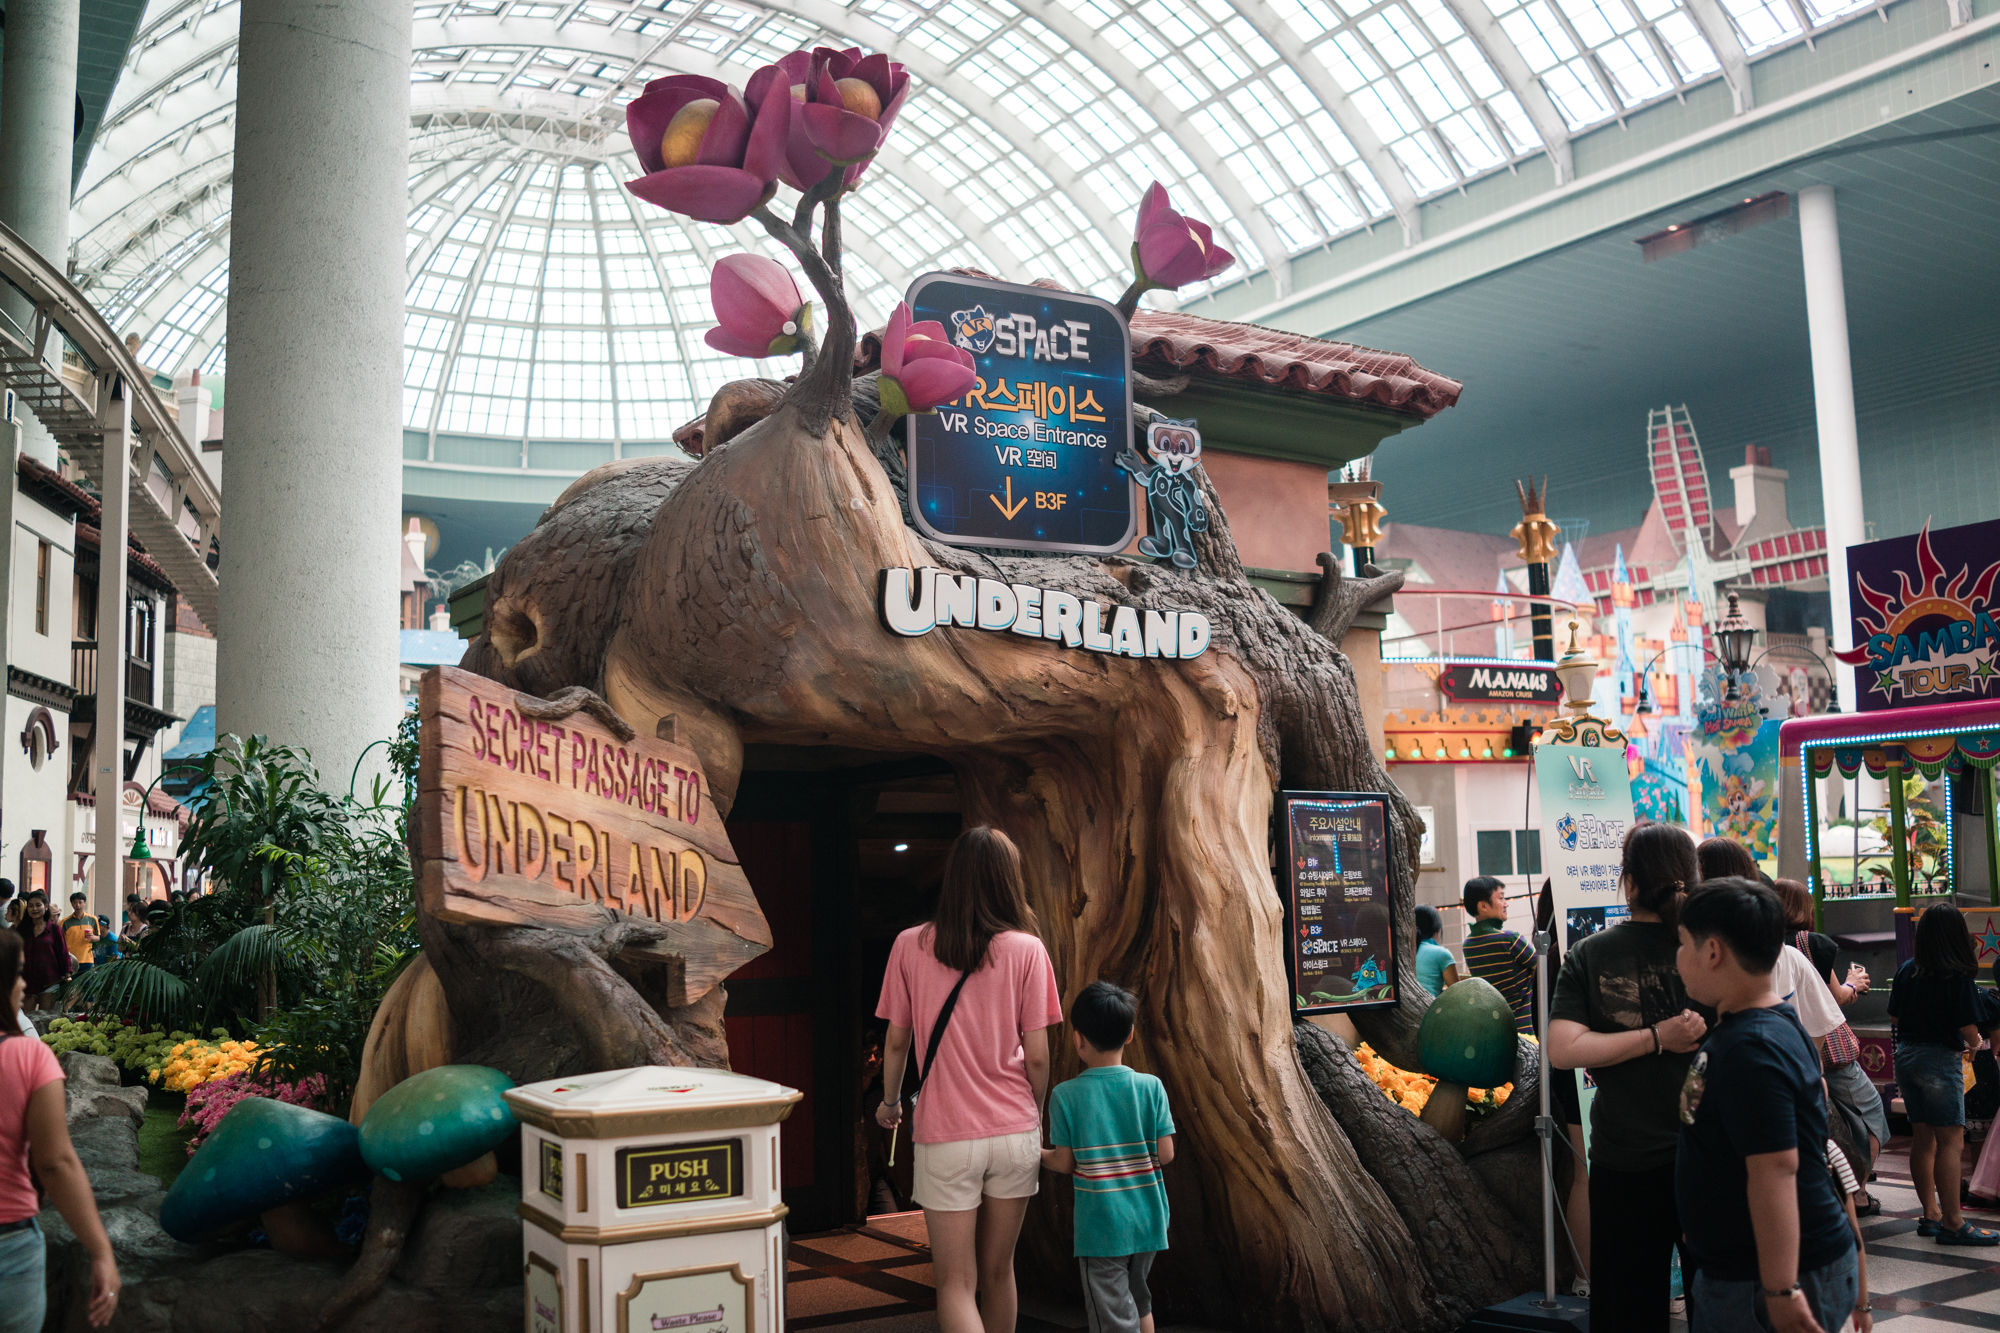 VR Games in Underland at Lotte World